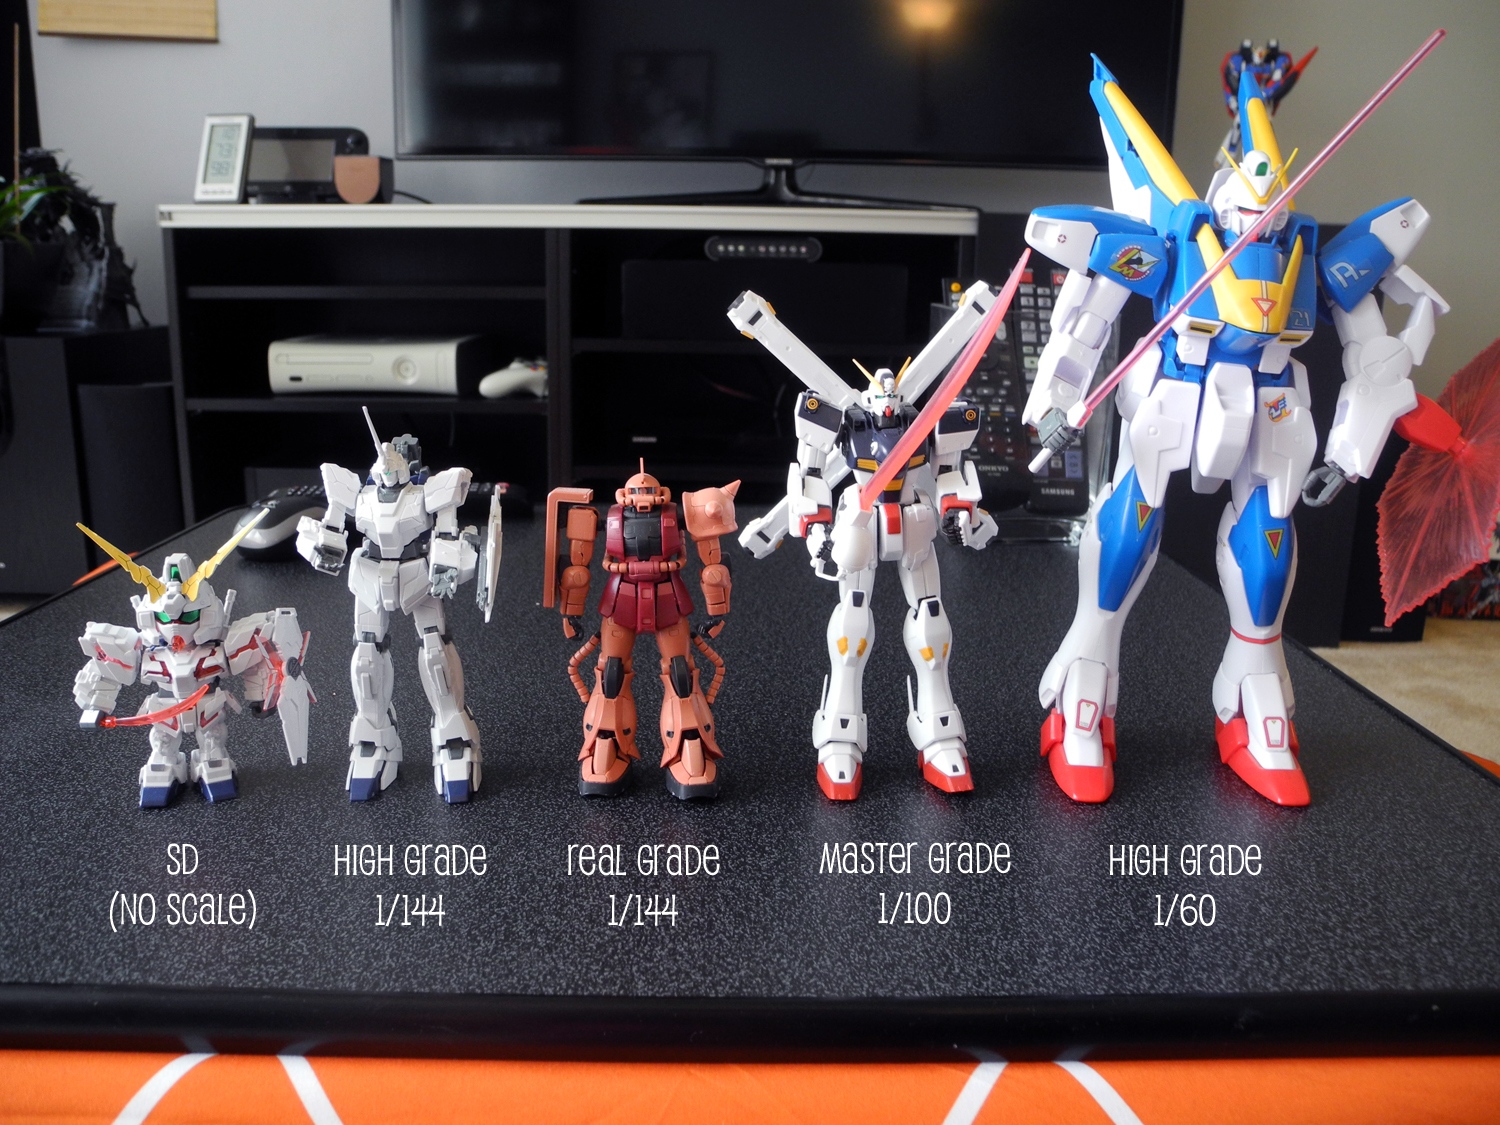 Gunpla Grade And Scale 101 Gundam Bandai Rg So Quiz Yourself Which Of The Gundams Pictured Was Hardest To Build It Not Victory High 1 60 Its Easy Make This Misconception